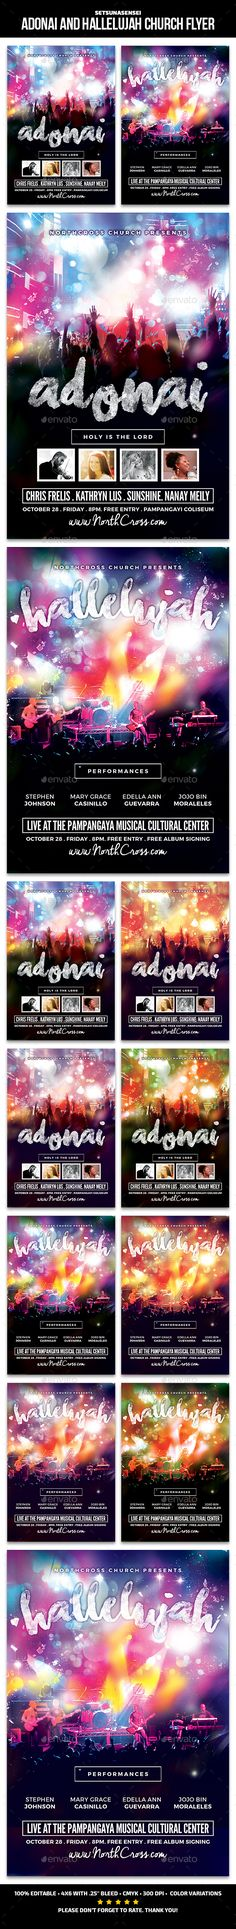 Adonai and Hallelujah Church Flyer - Church Flyers